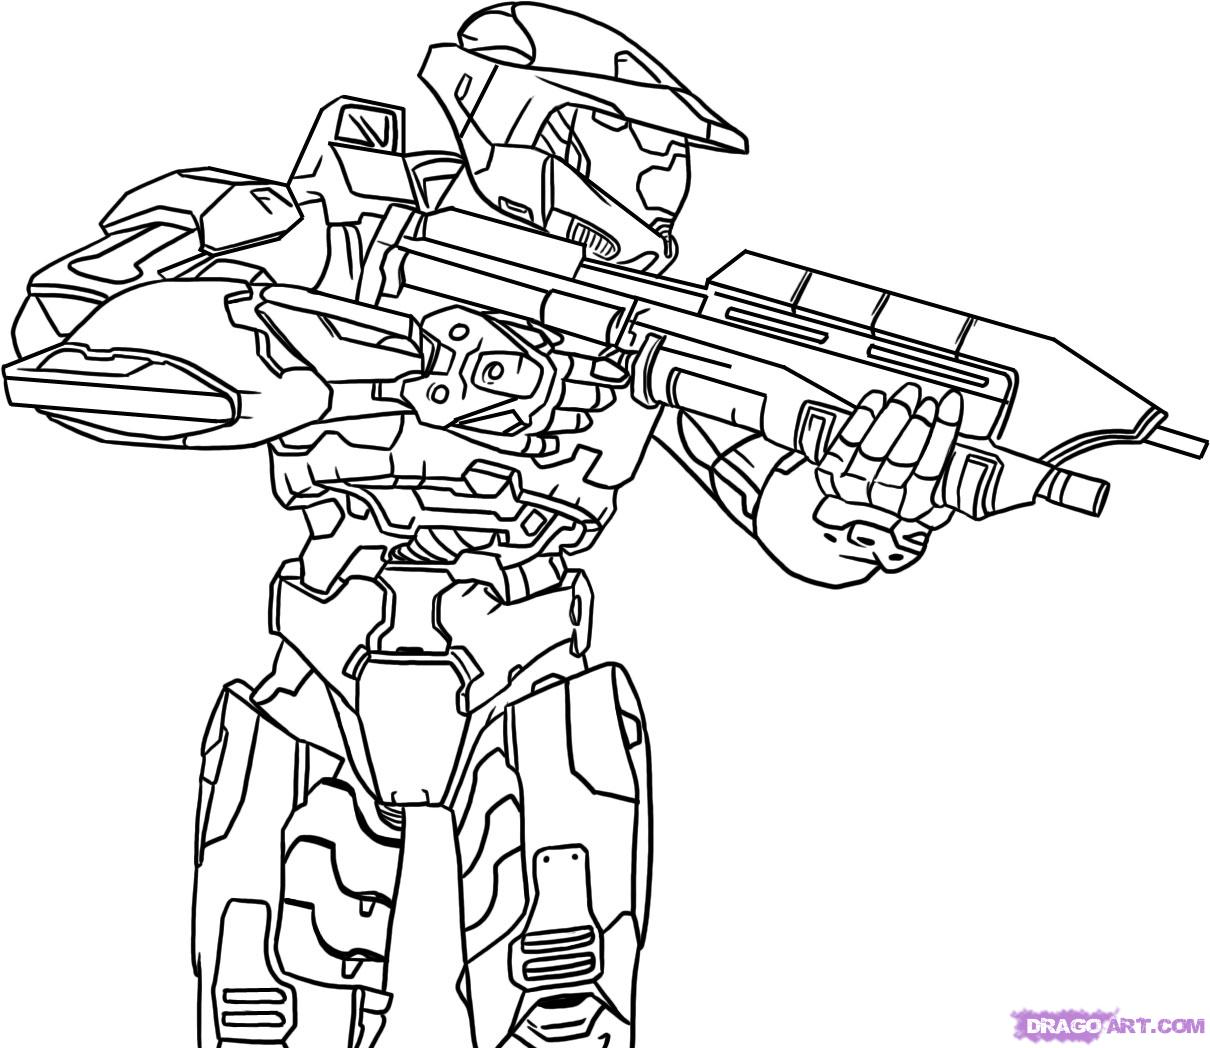 Halo Coloring Pages To Download And Print For Free